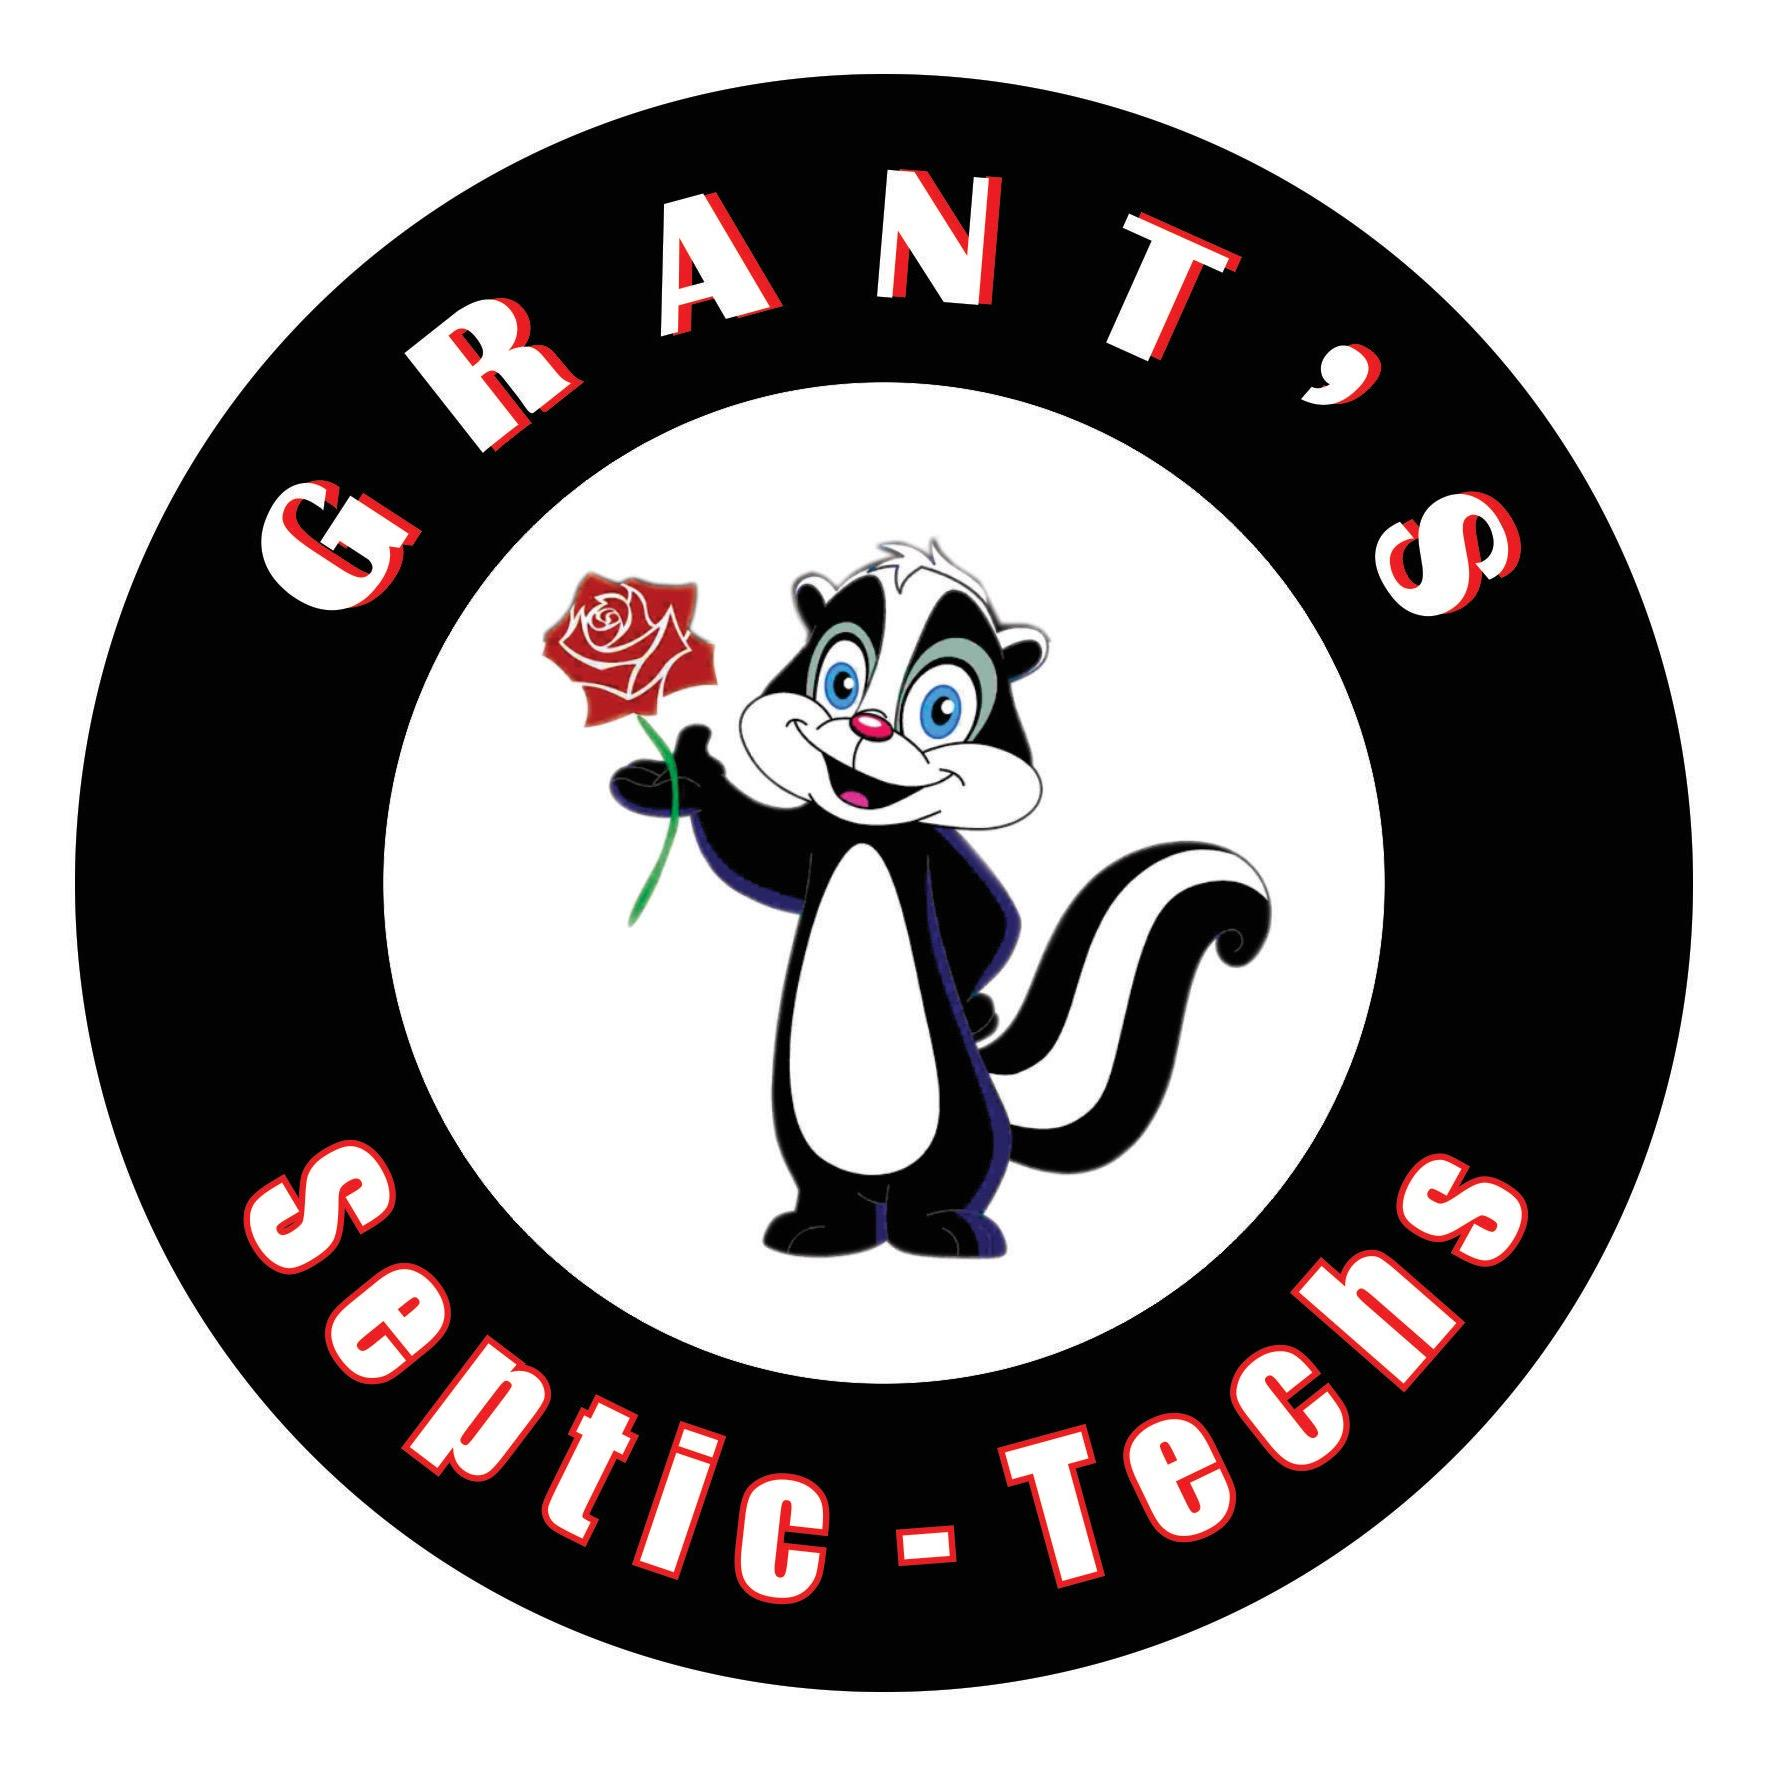 Grant's Septic Techs